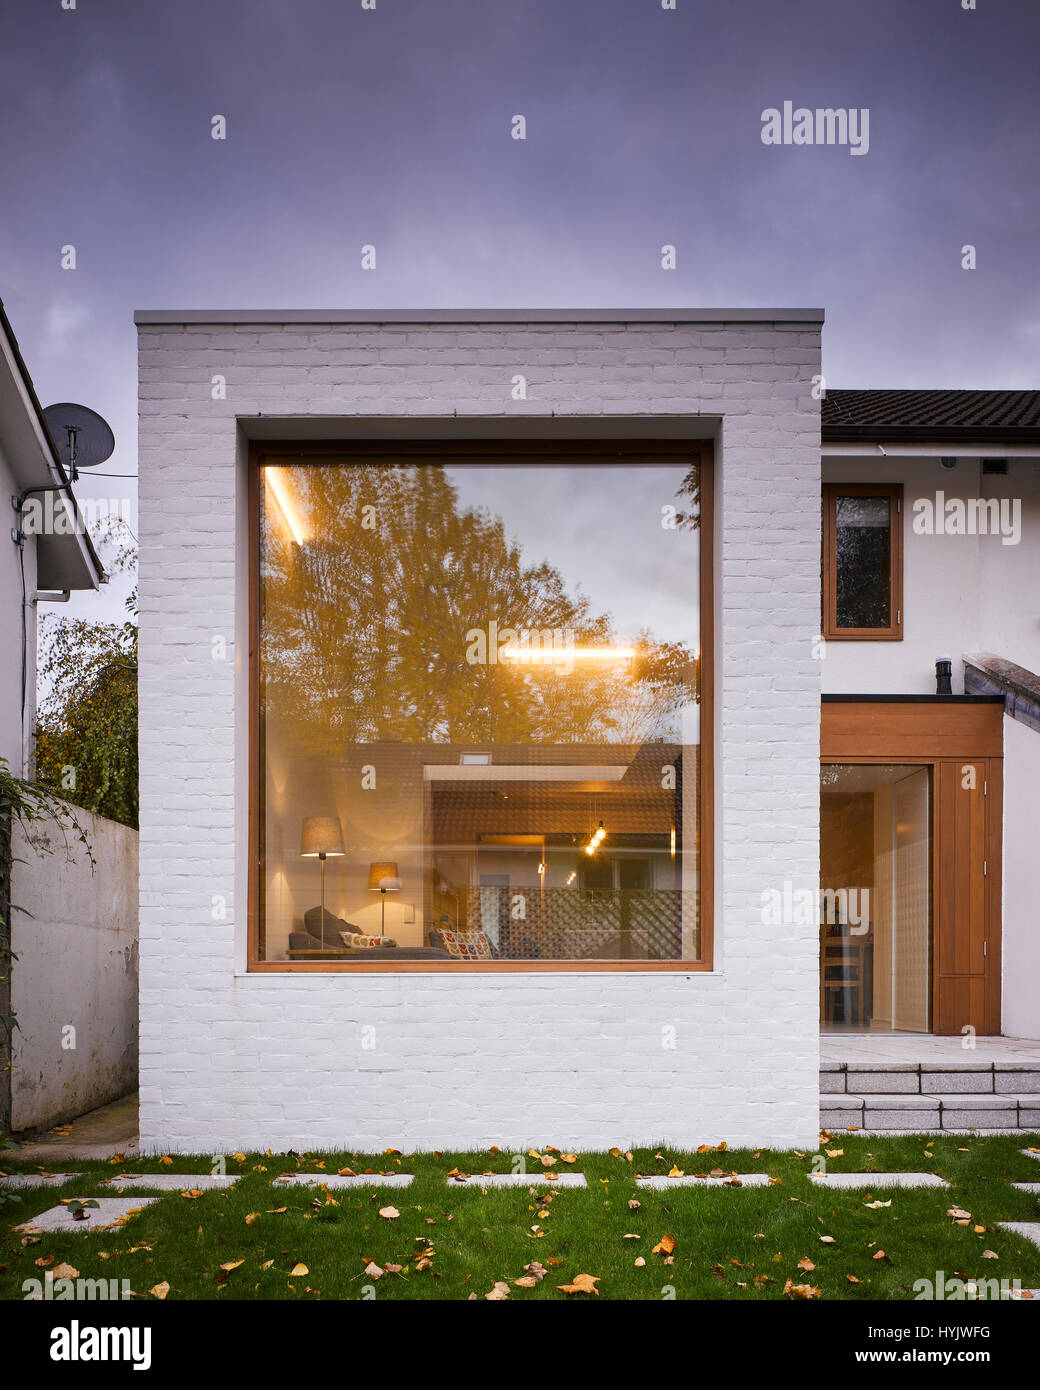 Exterior view of extension at dusk showing interior lighting. Extension to House, Stillorgan, Dublin, Ireland. Architect: - Stock Image